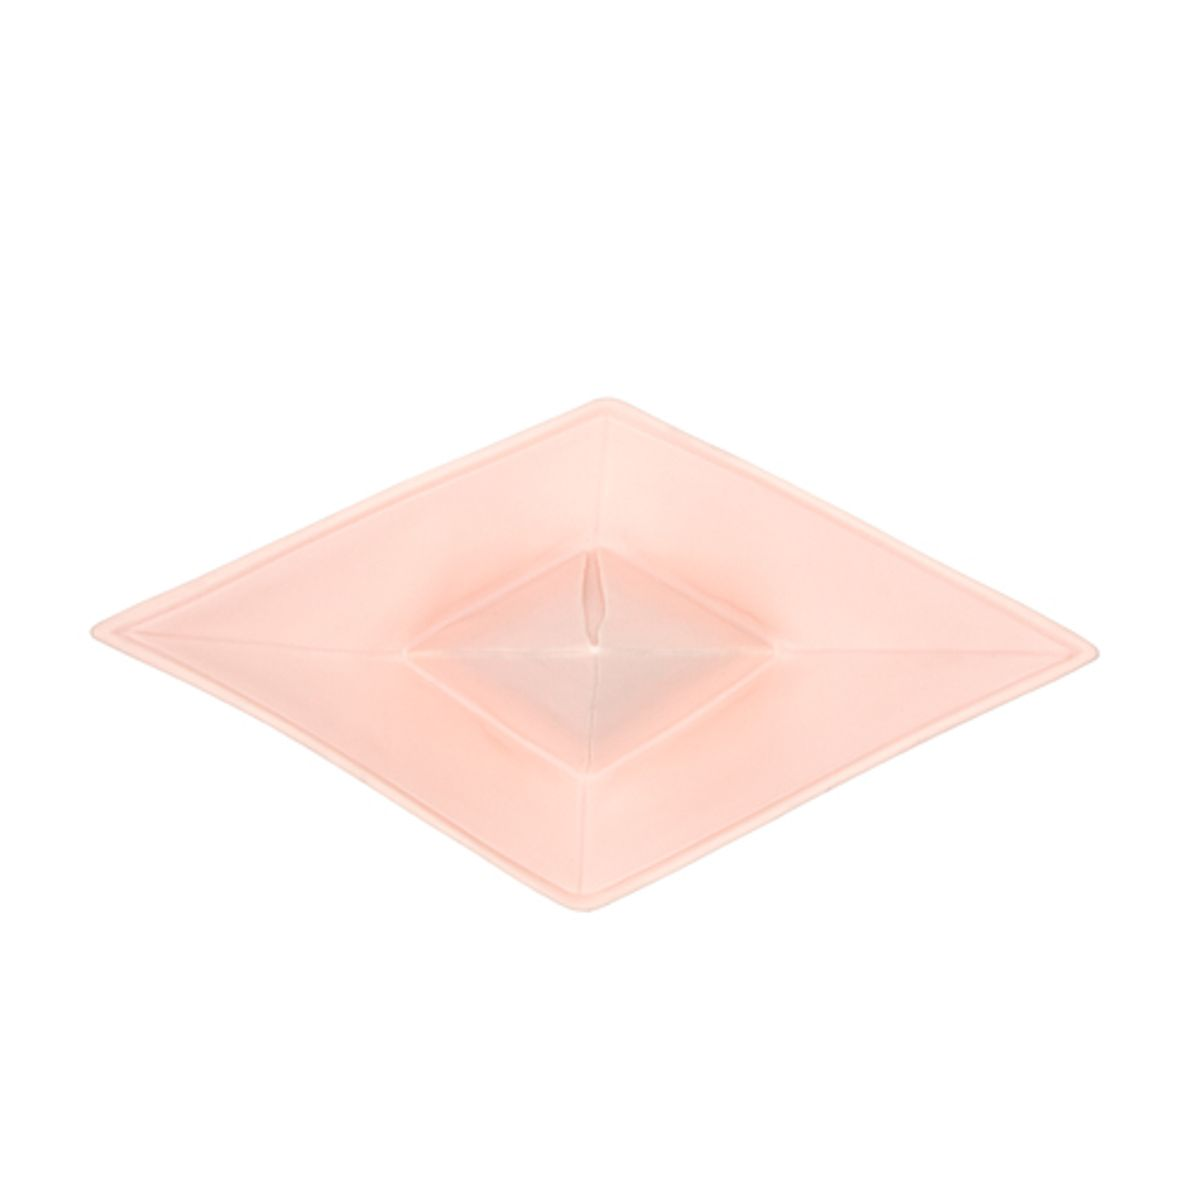 Lampe / veilleuse Bâteau en vinyle Goodnight Light - Rose pastel